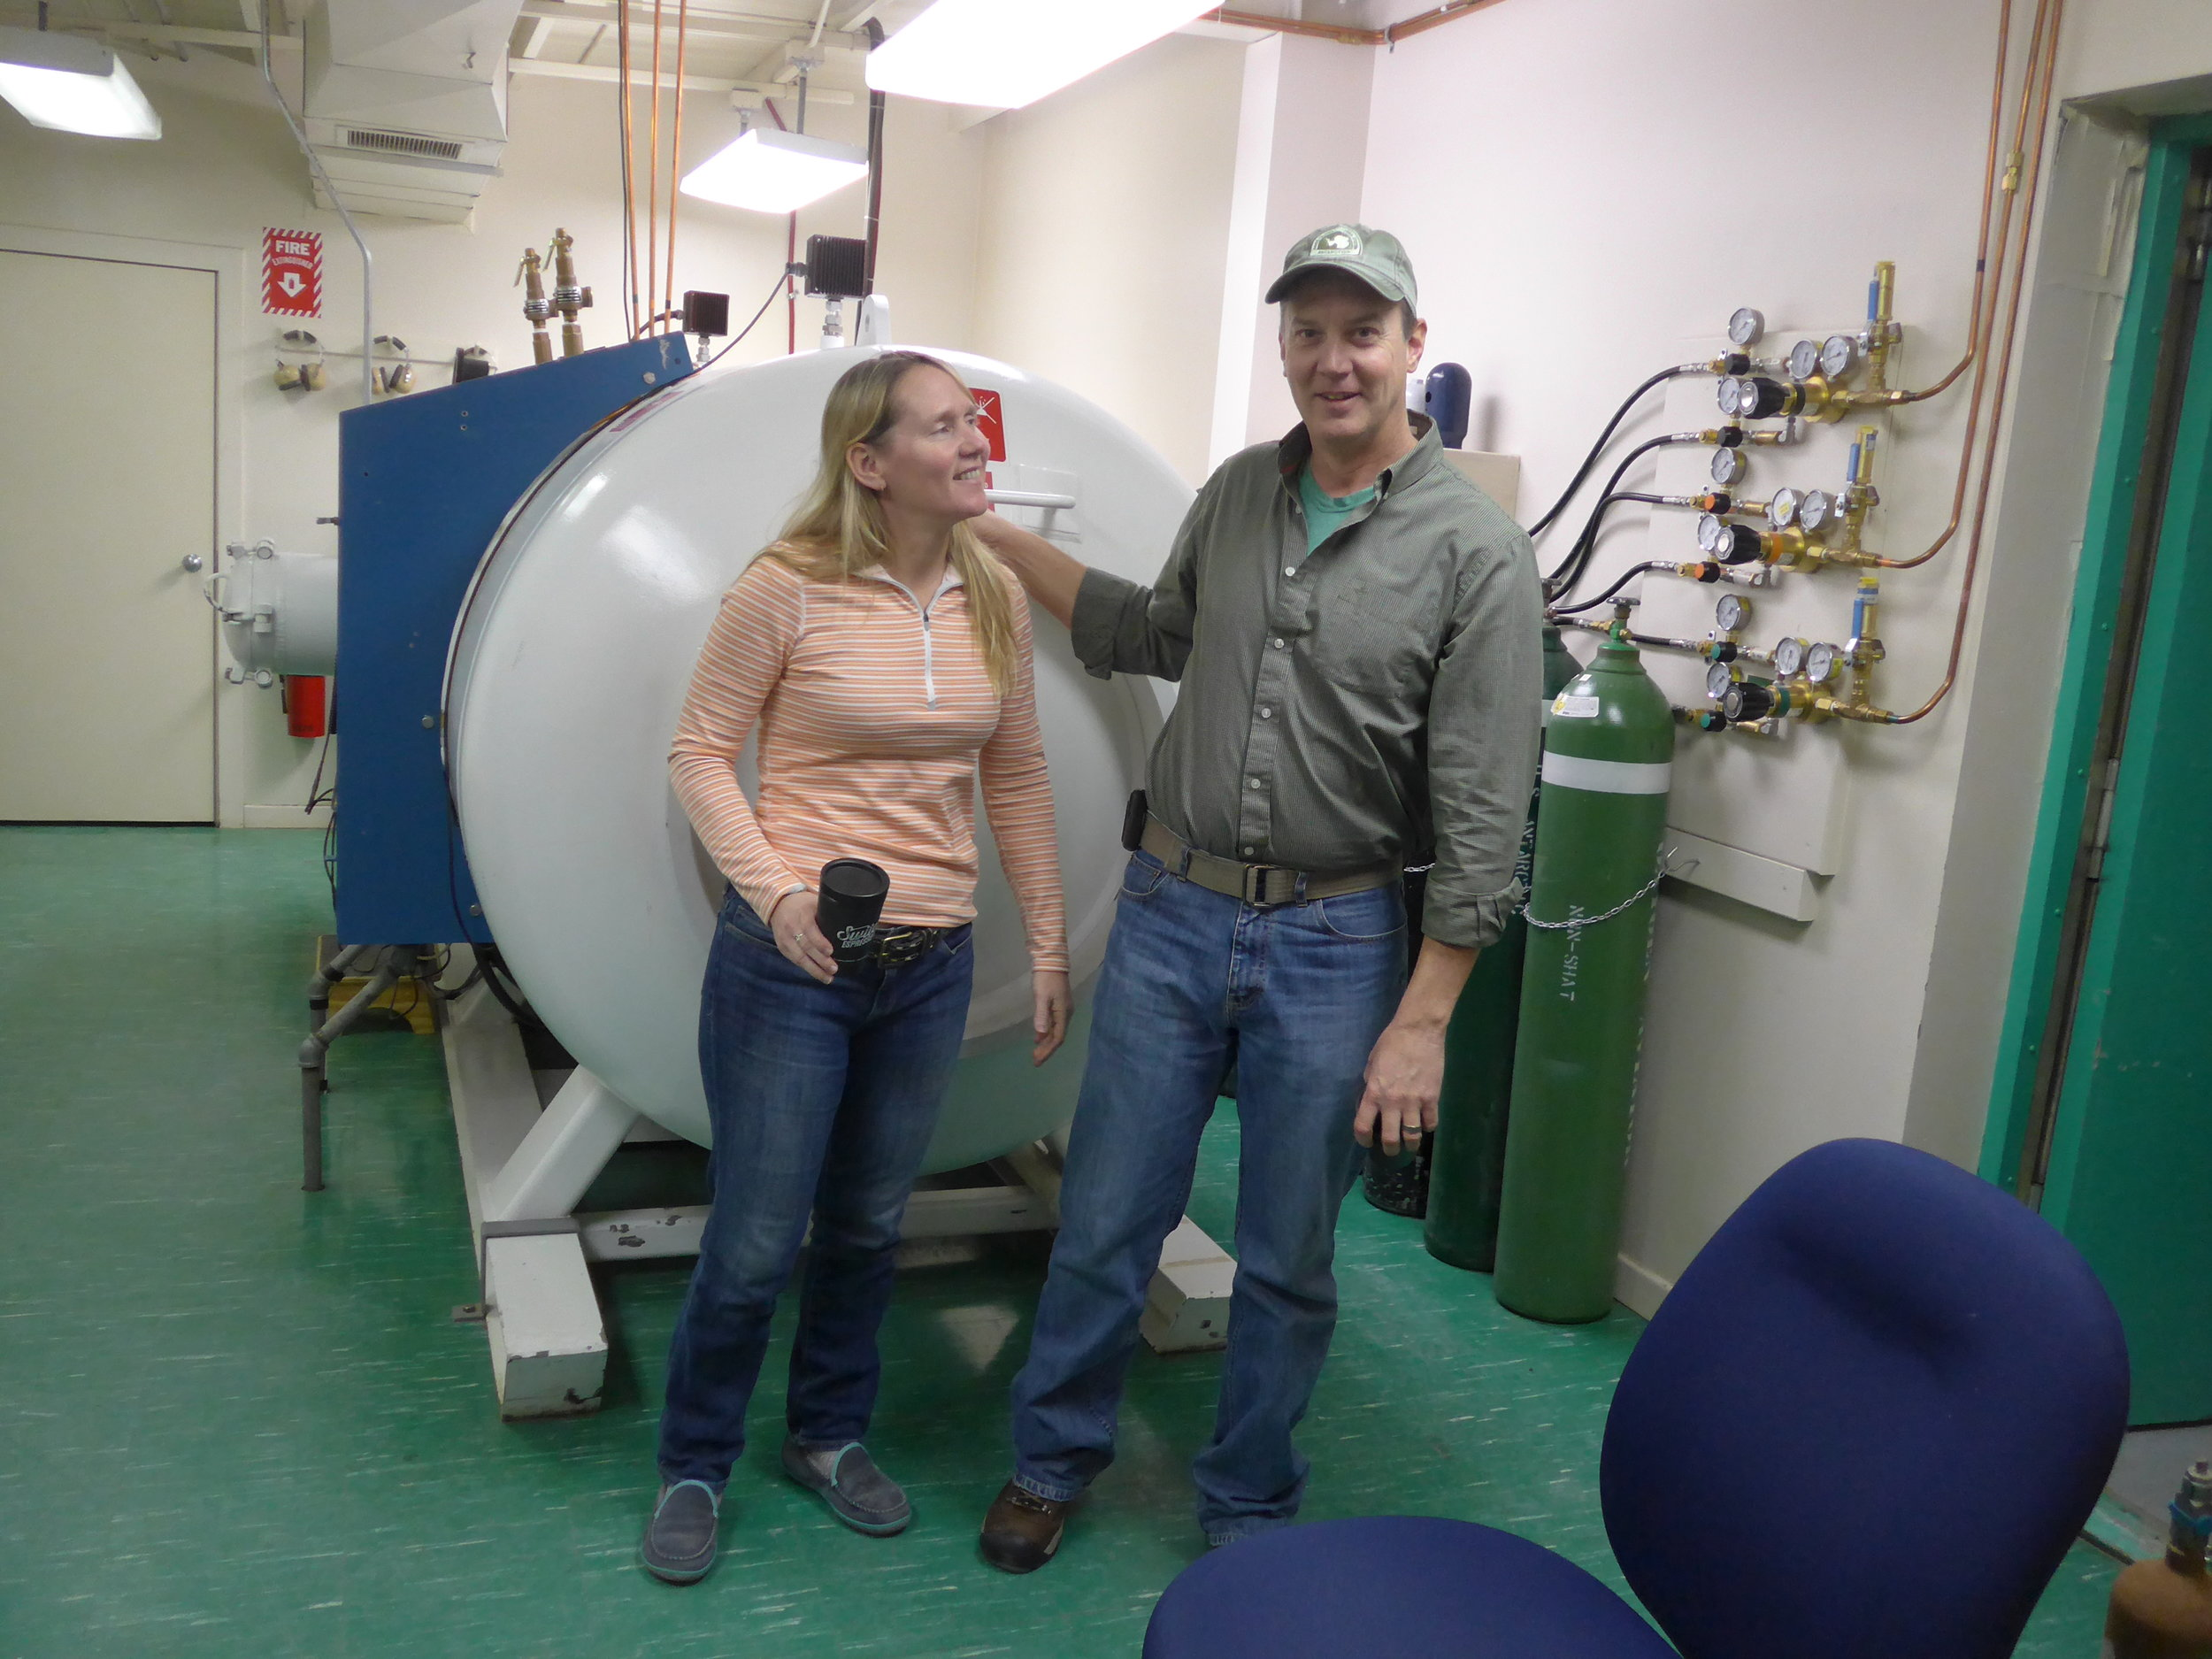 Megan and Michael Dore in front of the Mcmurdo General Hospital hyperbaric chamber  Ross Island, Antarctica